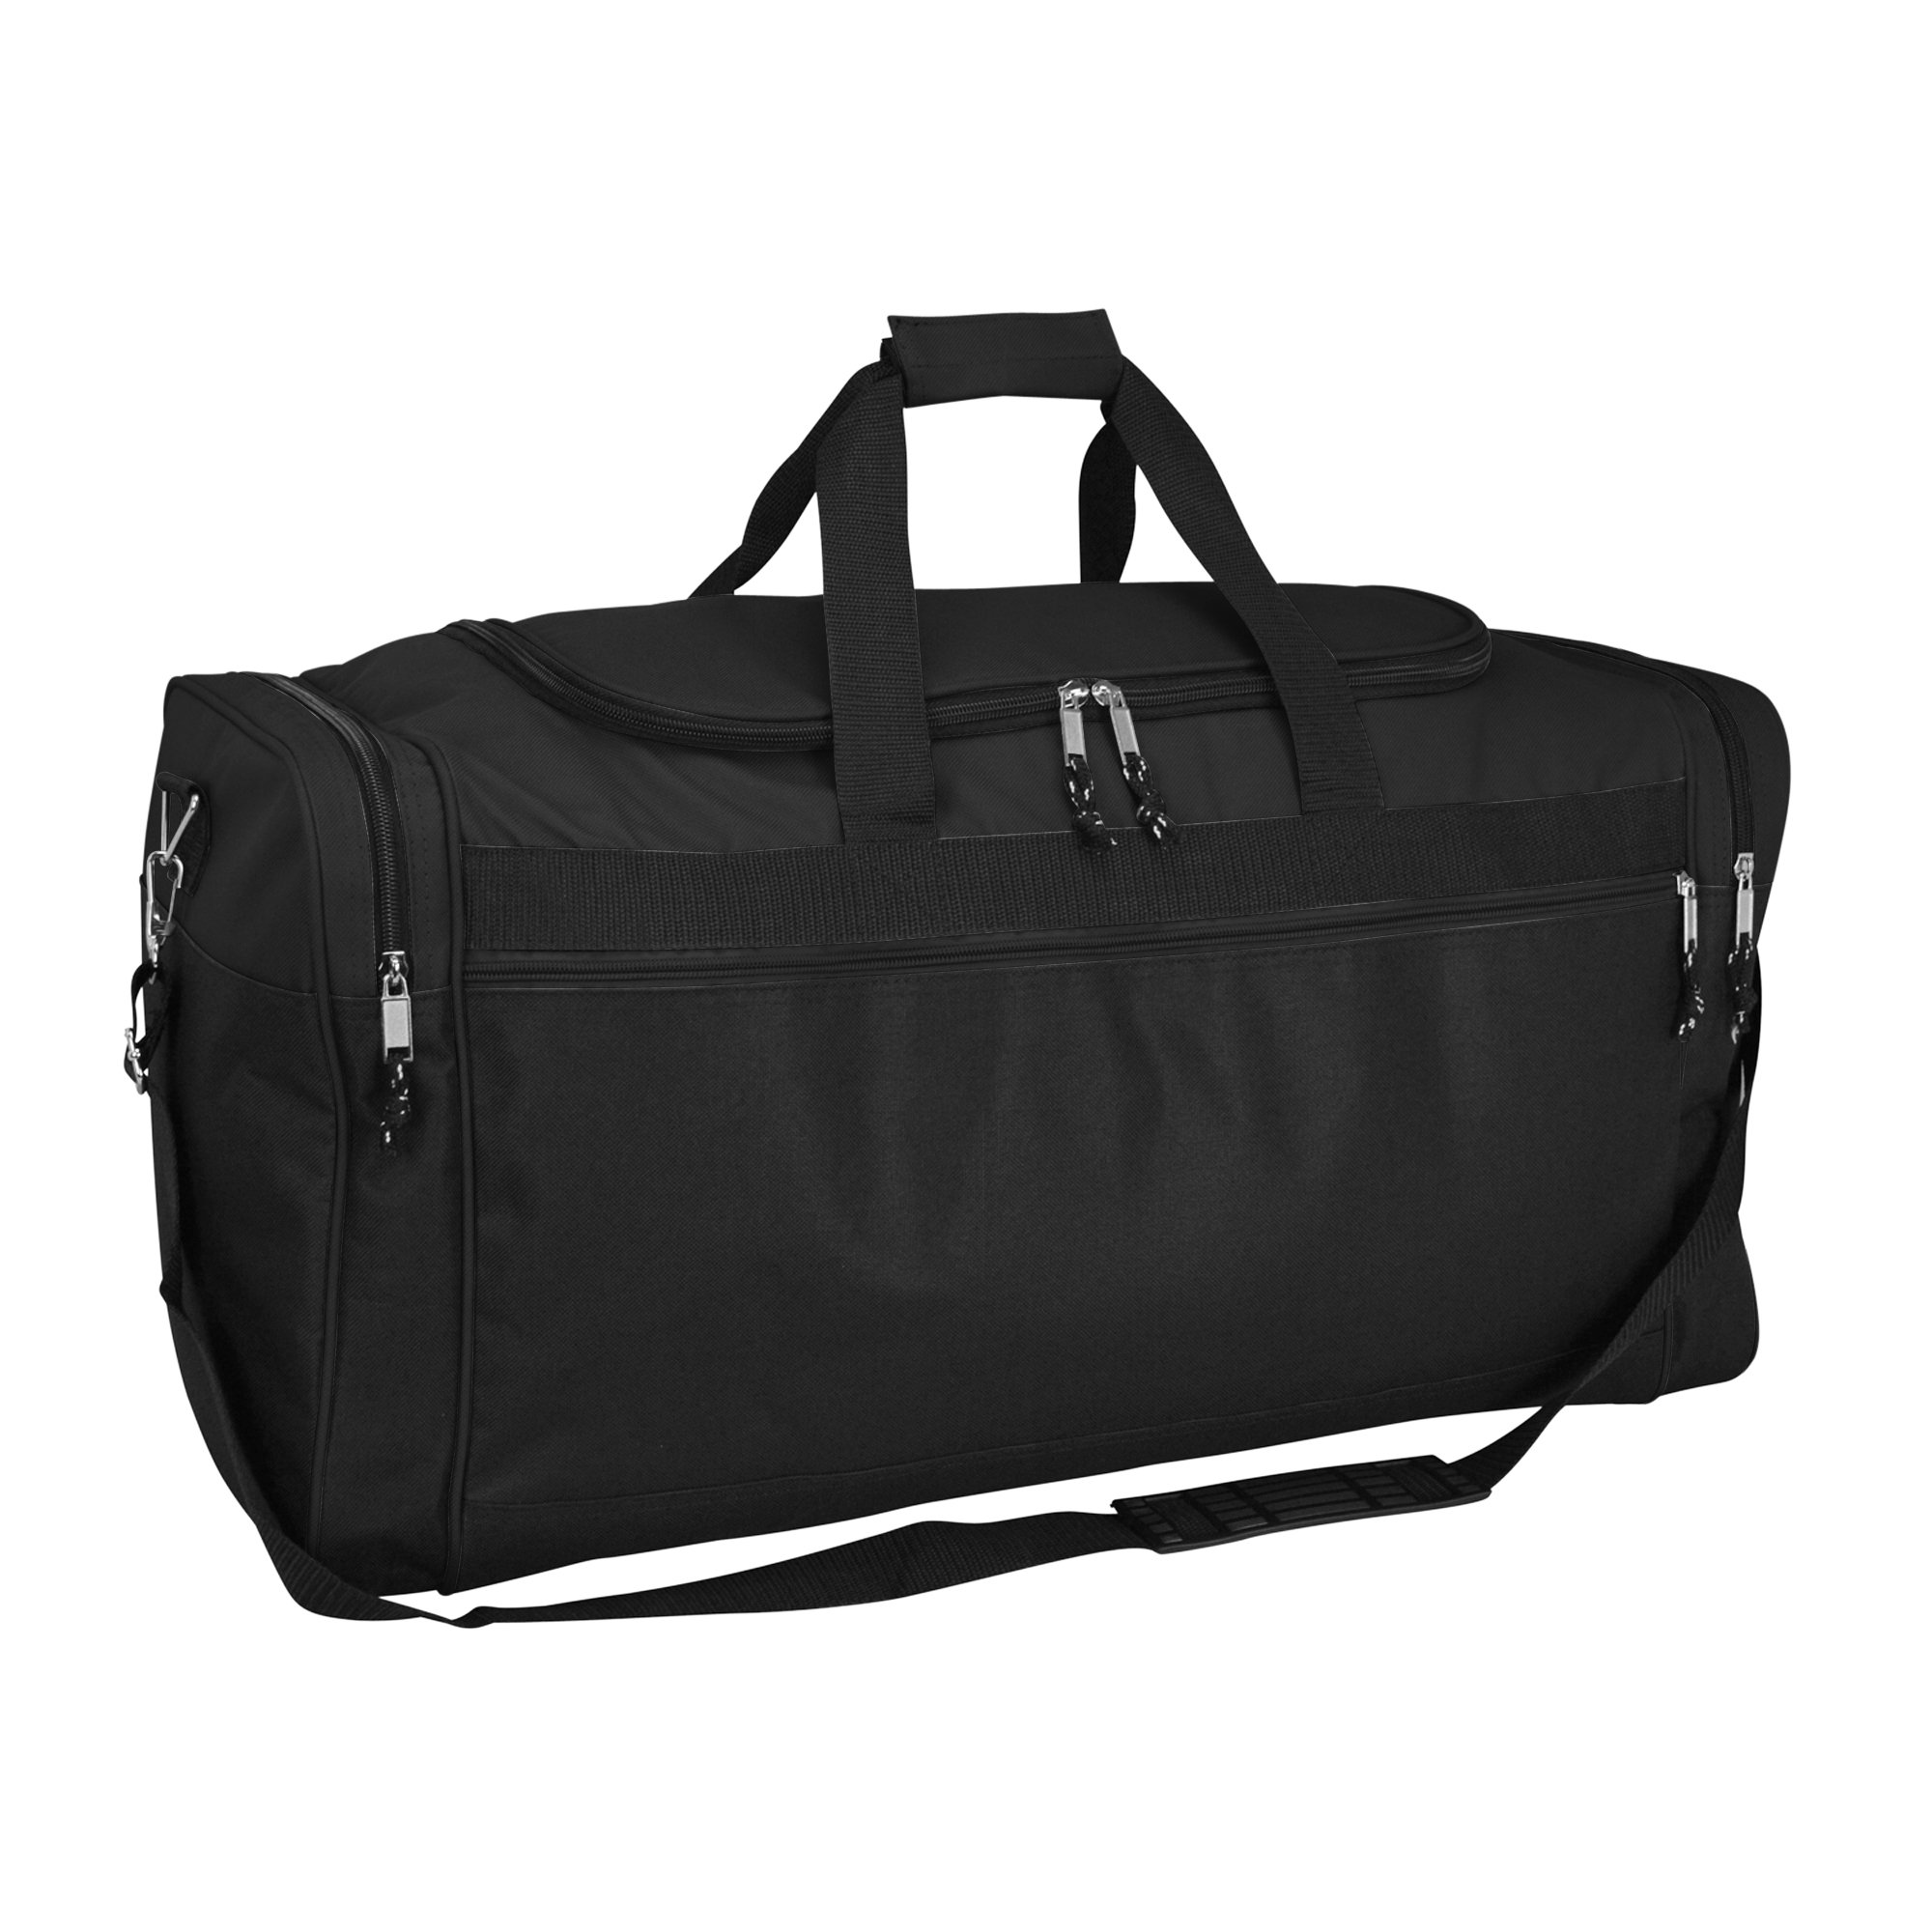 DALIX 25'' Extra Large Vacation Travel Duffle Bag in Black